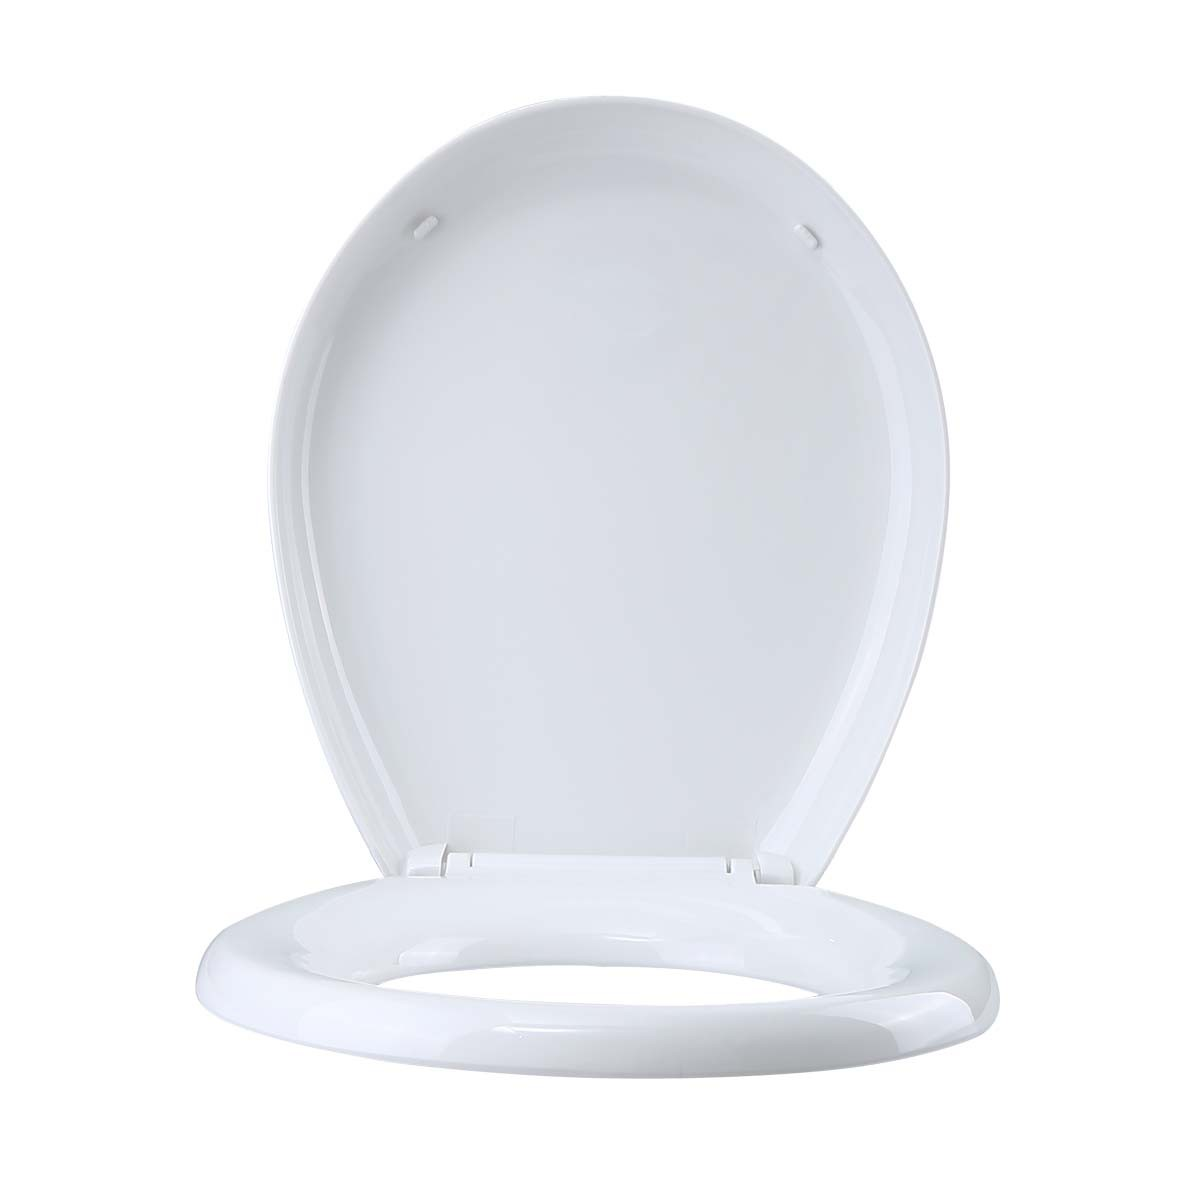 Toilet Seat Slow EZ Close No Slam Plastic Round White Set of 2 novelty decorative replacement loo commode lavatory custom unusual luxury quality standard color design pretty